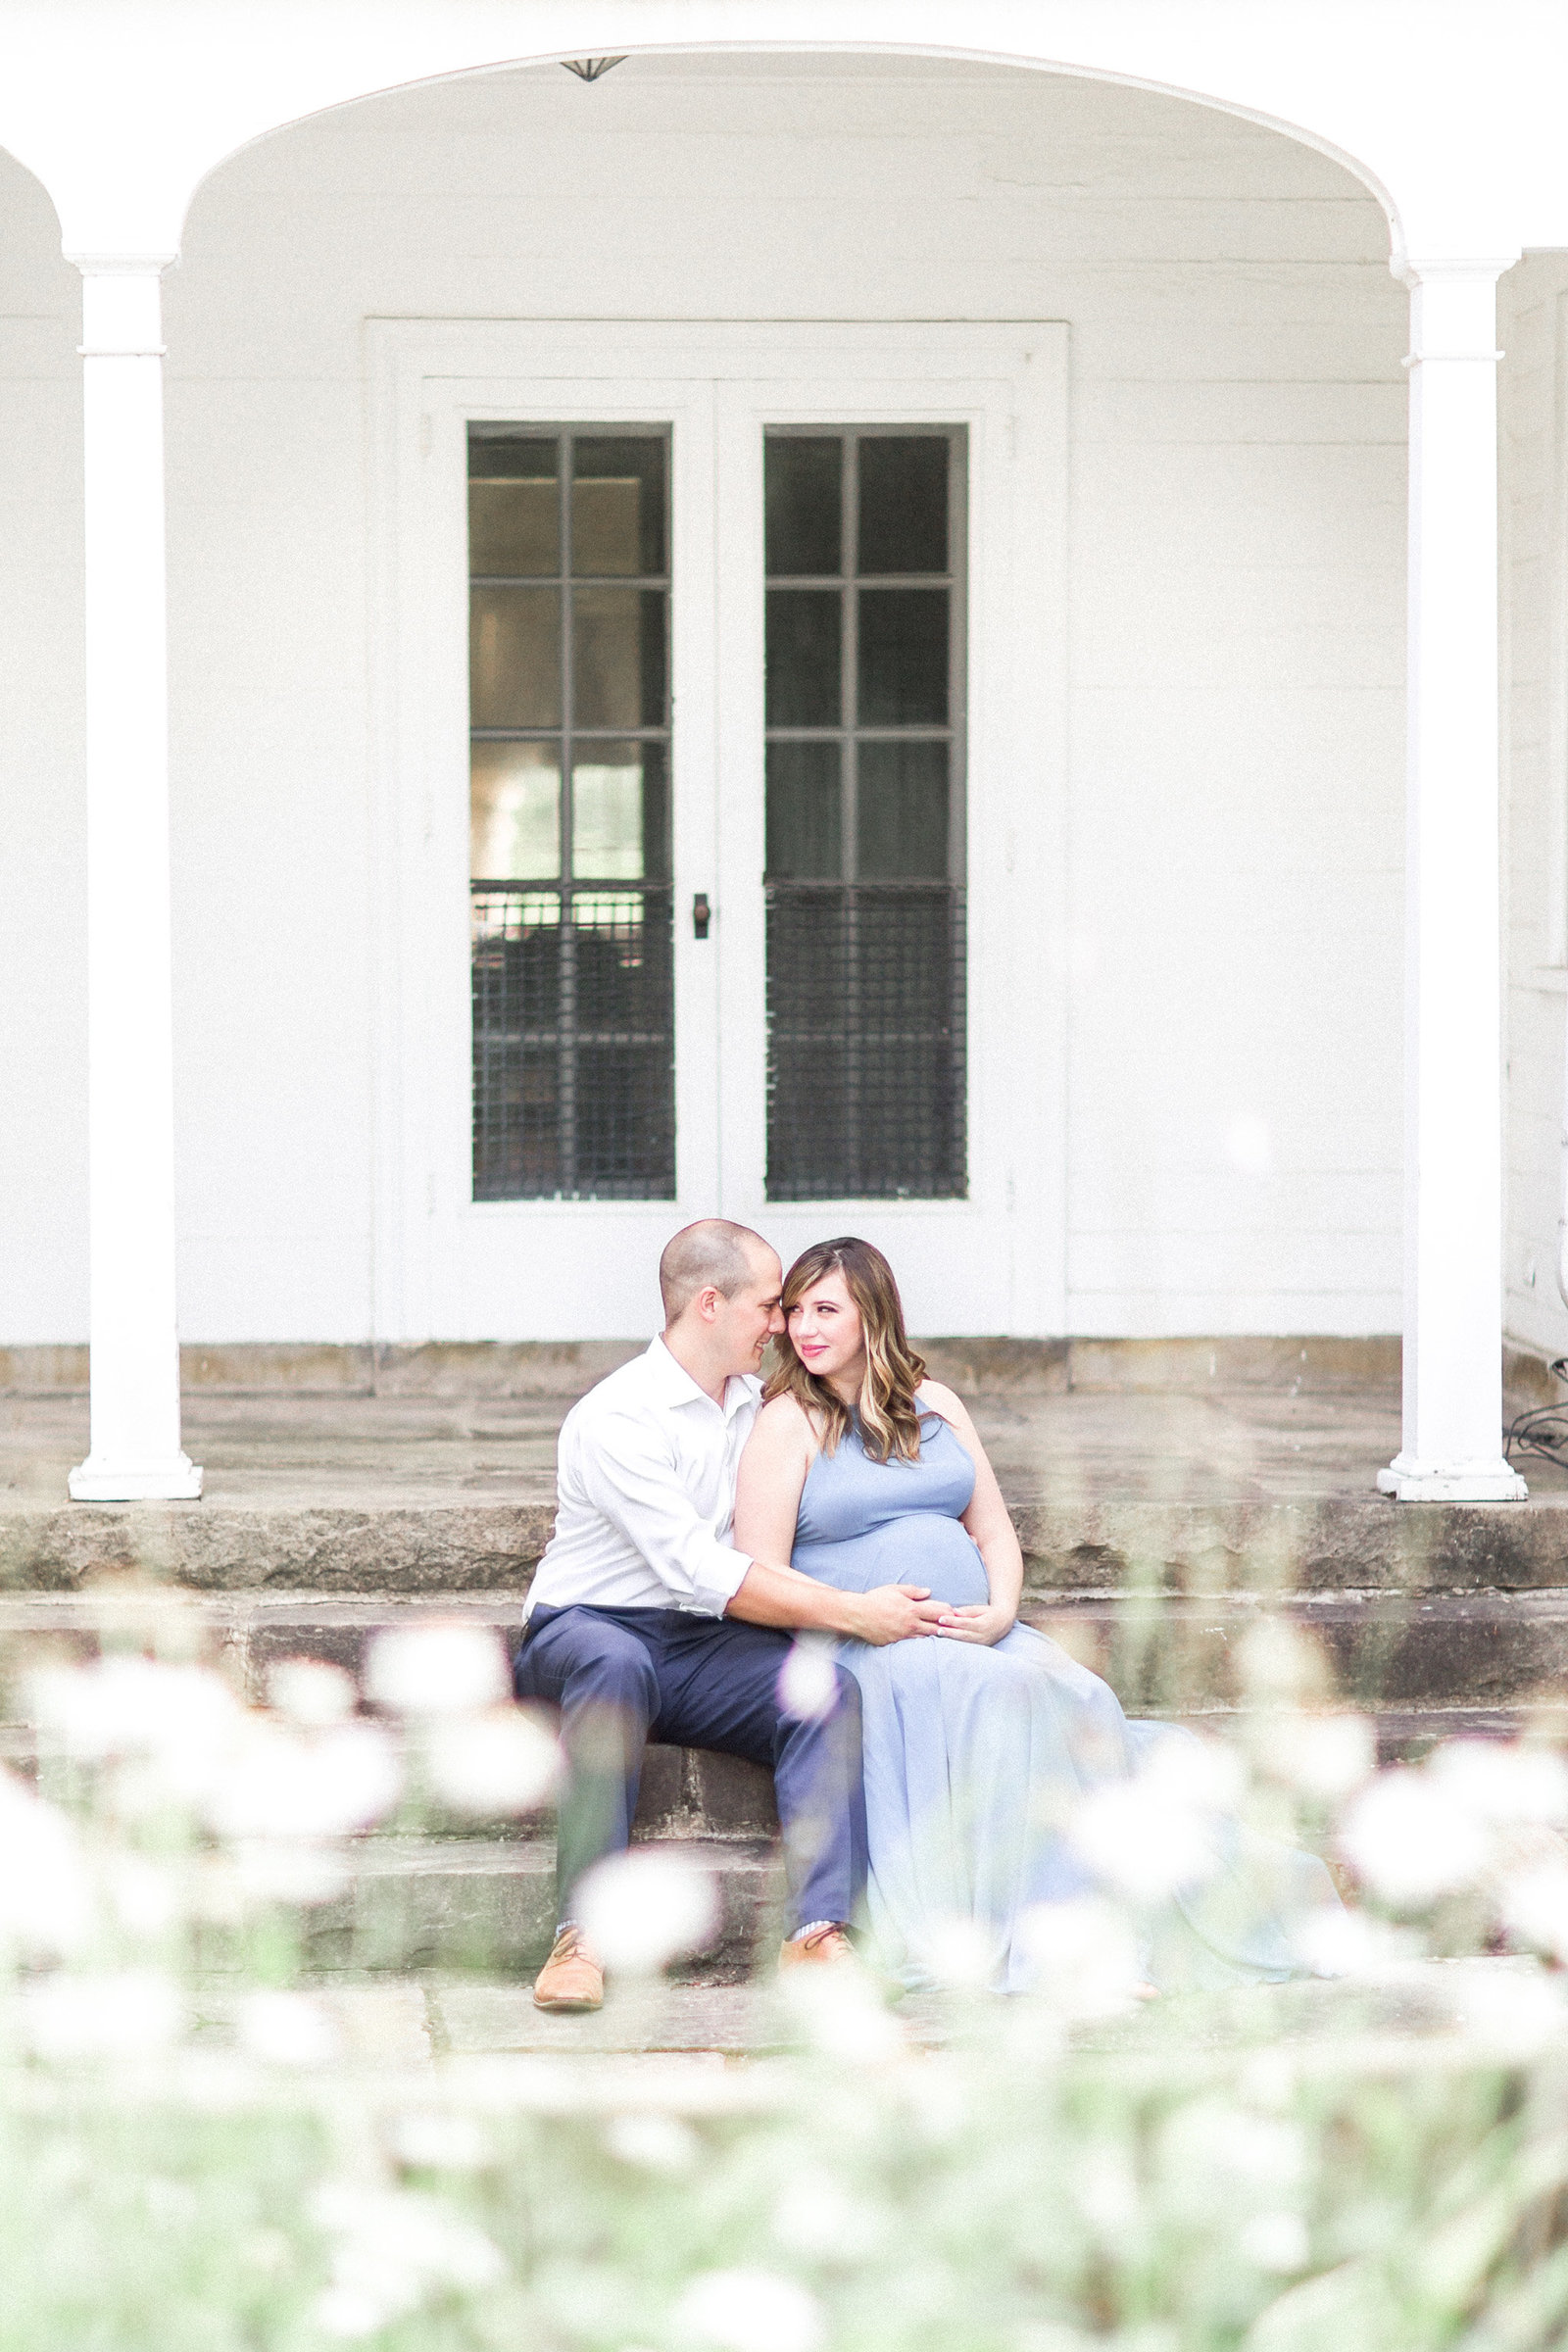 Akron Maternity and Newborn Photographer at Quail Hollow State Park in Hartville